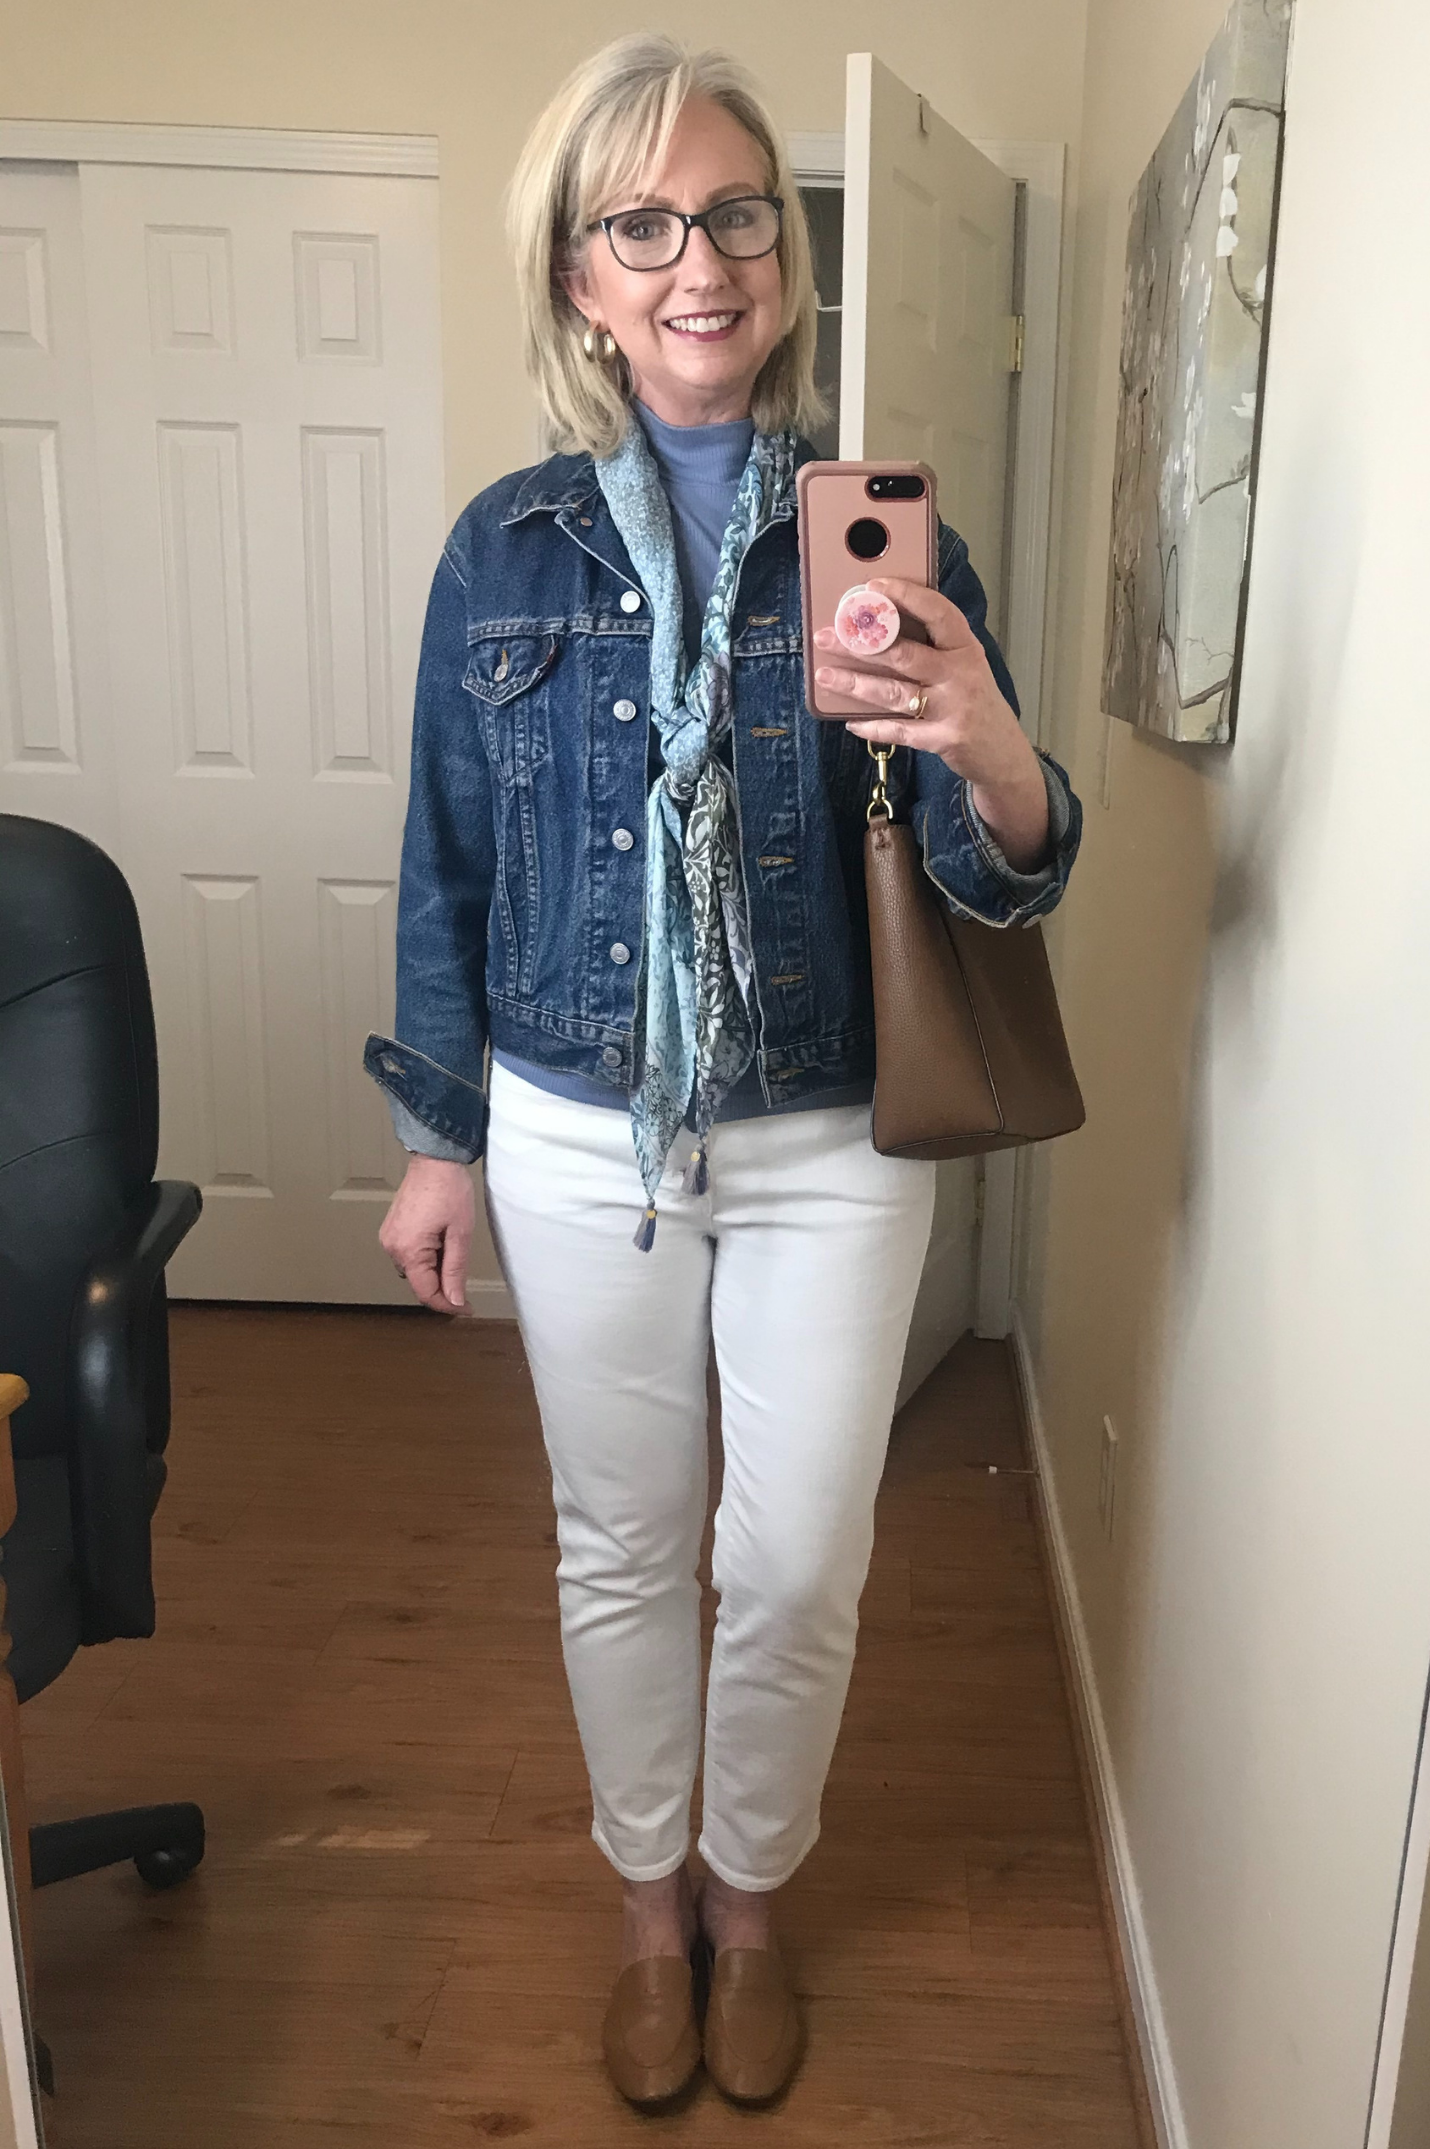 What I Wore to Meet up with Friends